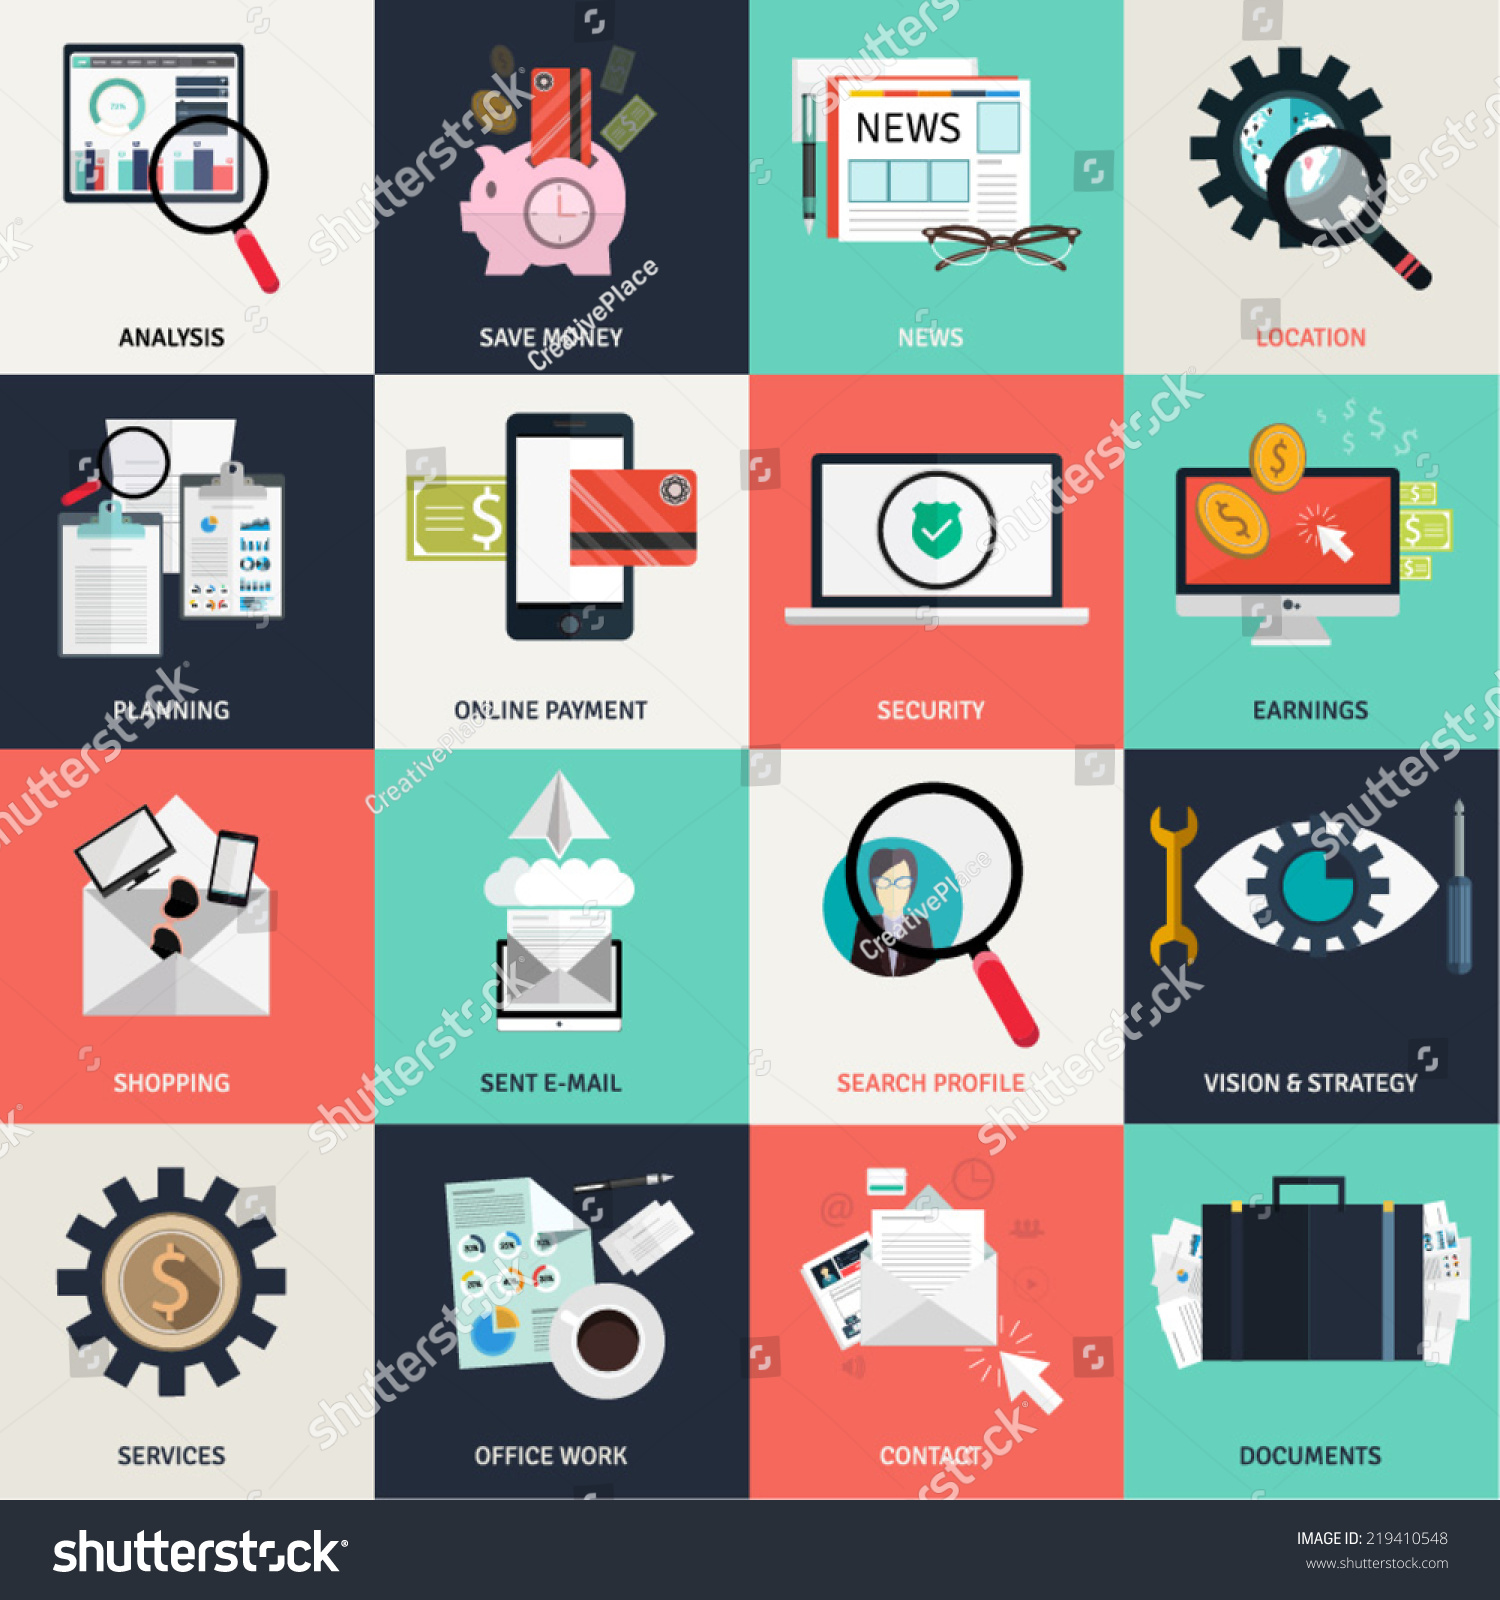 Flat design concept icons networking online stock vector 219410548 flat design concept icons for networking online education business e commerce payments buycottarizona Choice Image